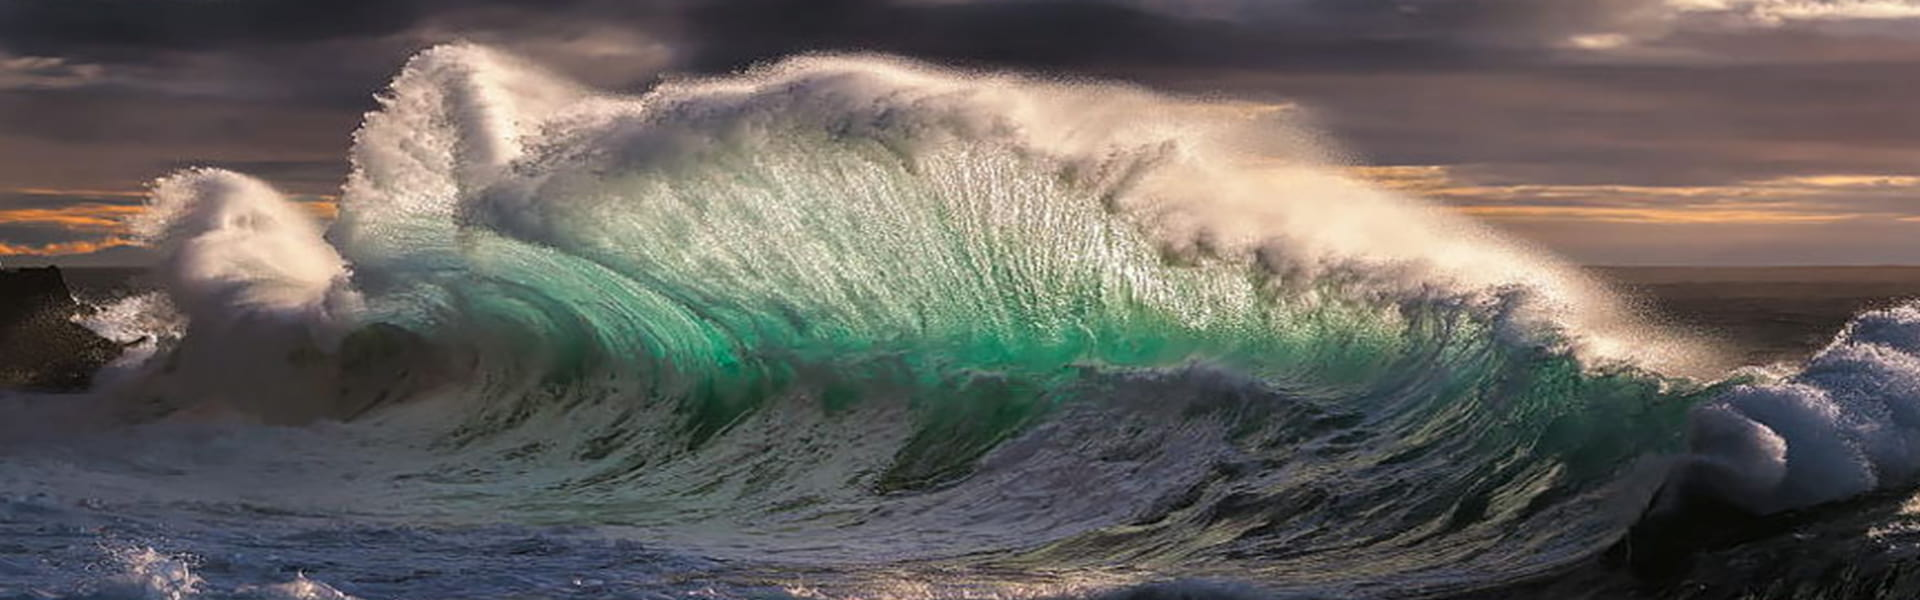 15 fotos majestuosas de olas rompiendo-NATION